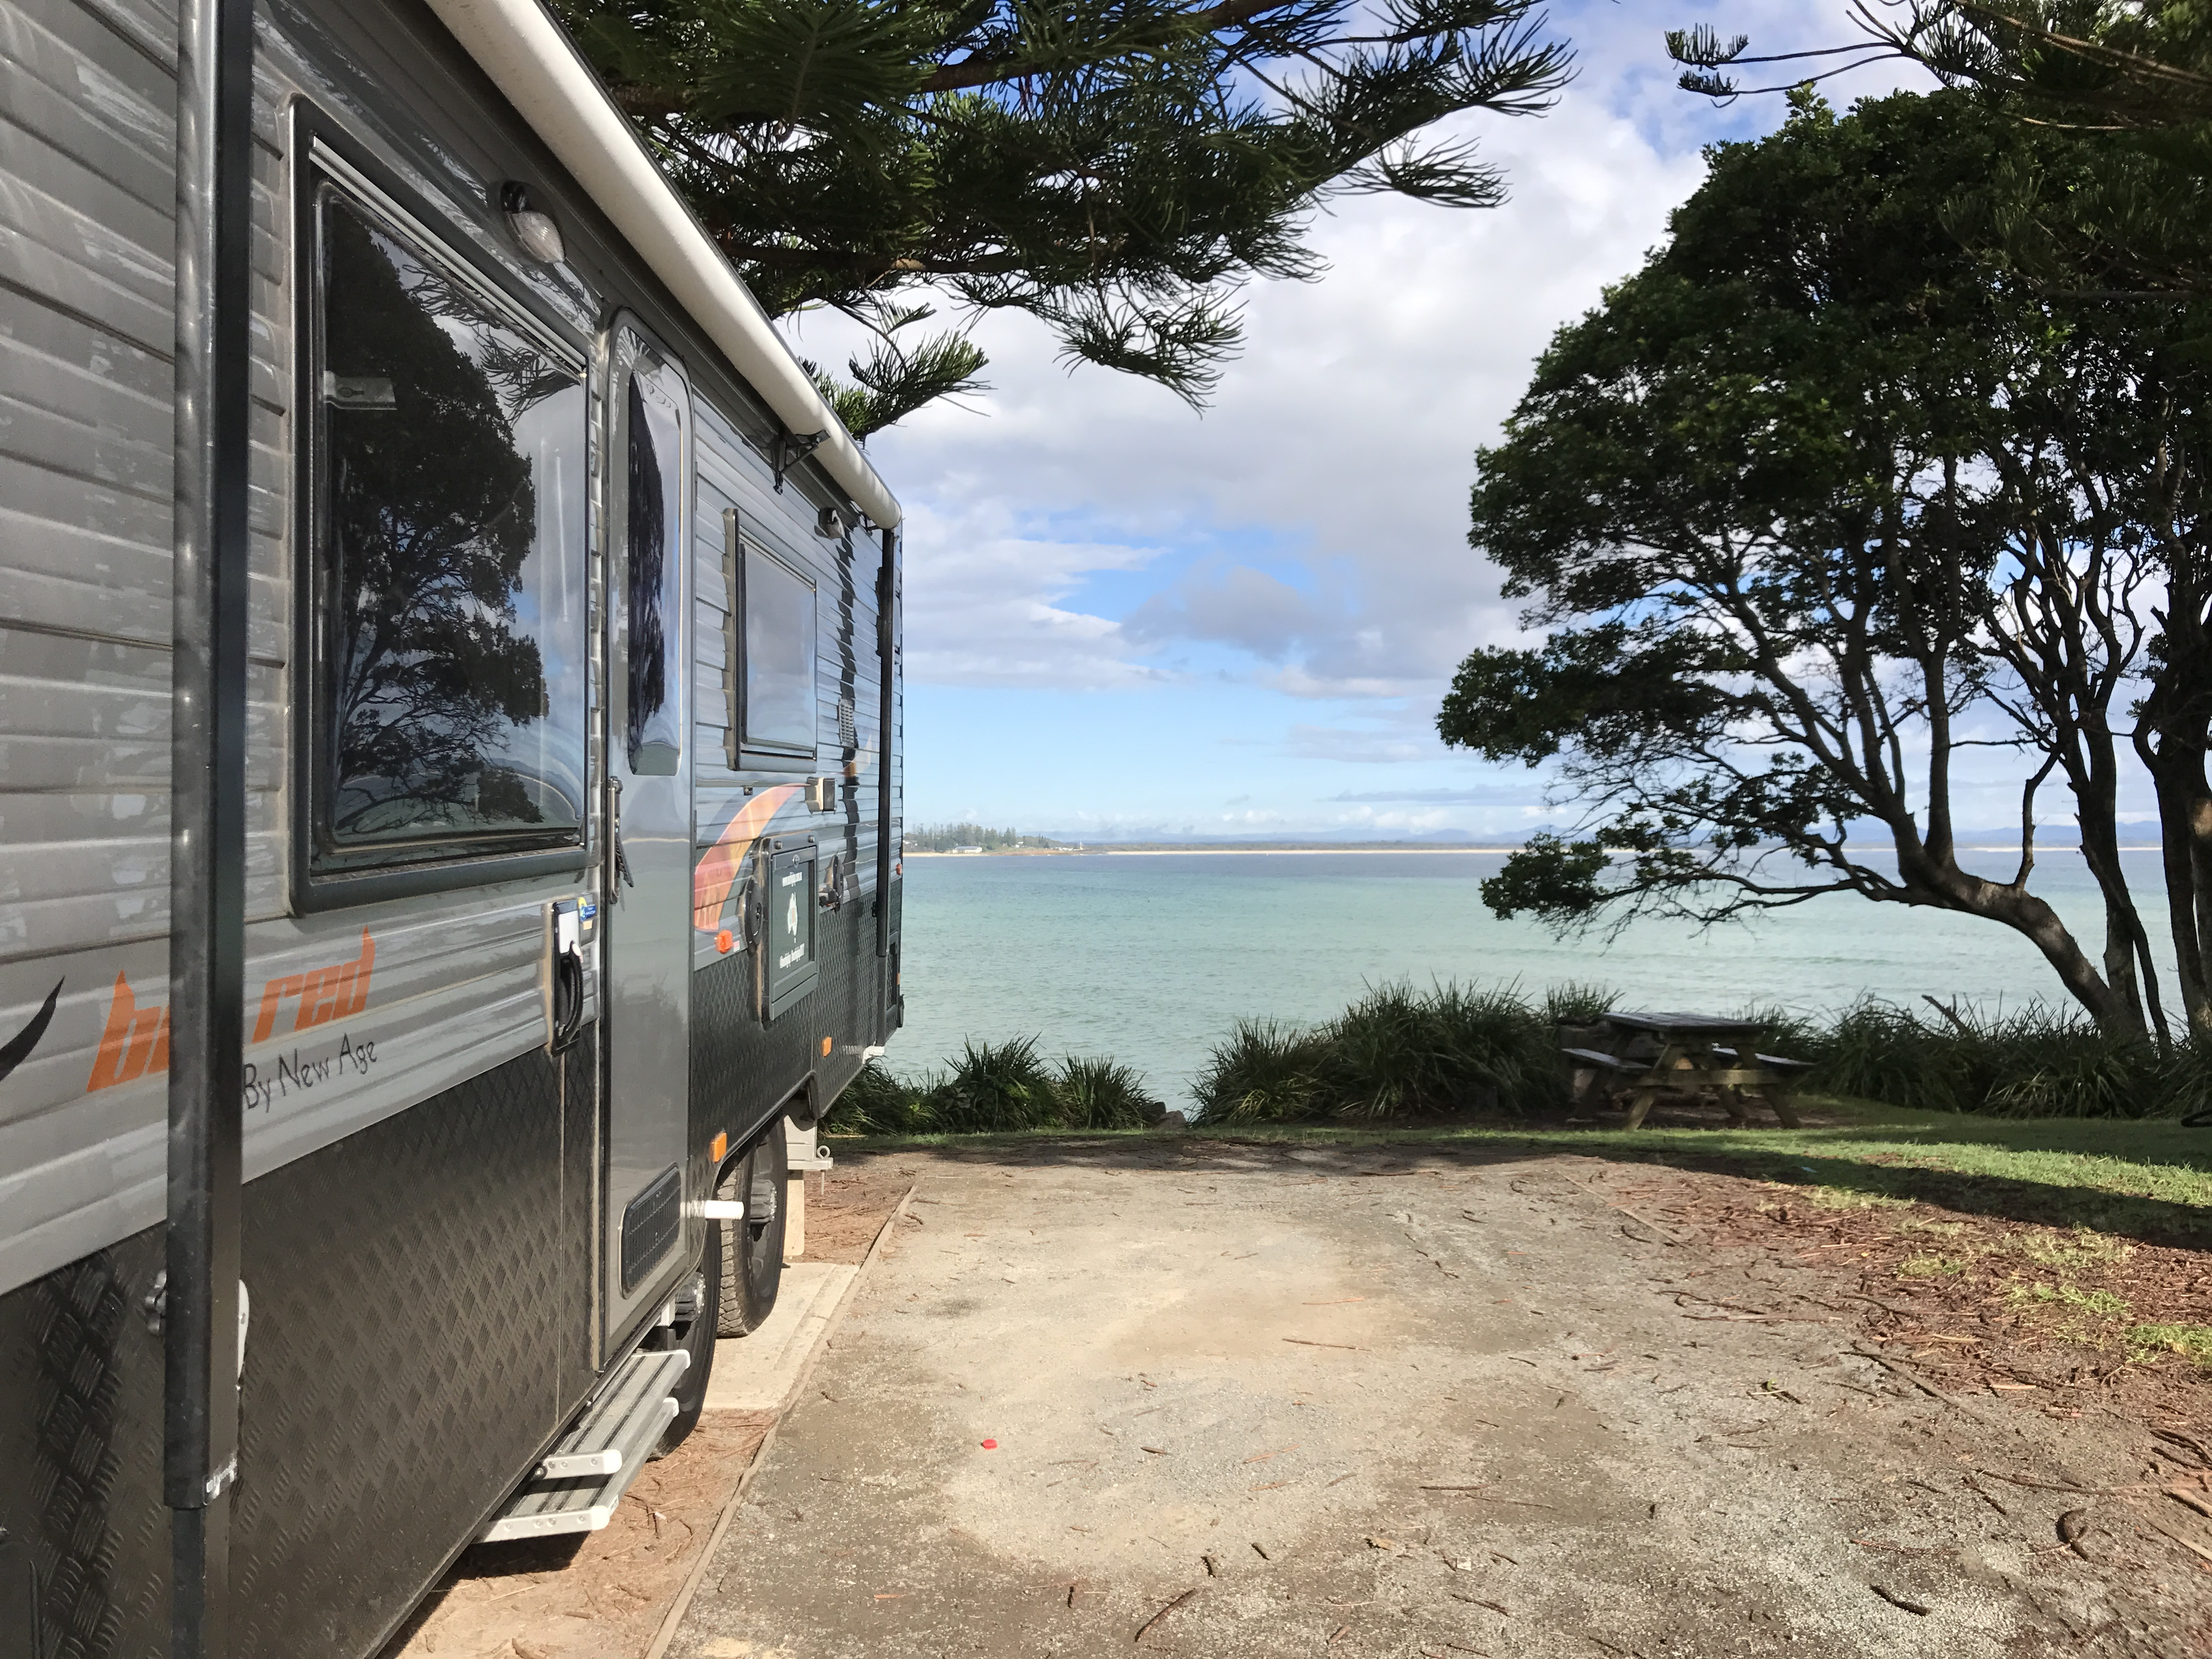 Trial Bay Gaol Campground